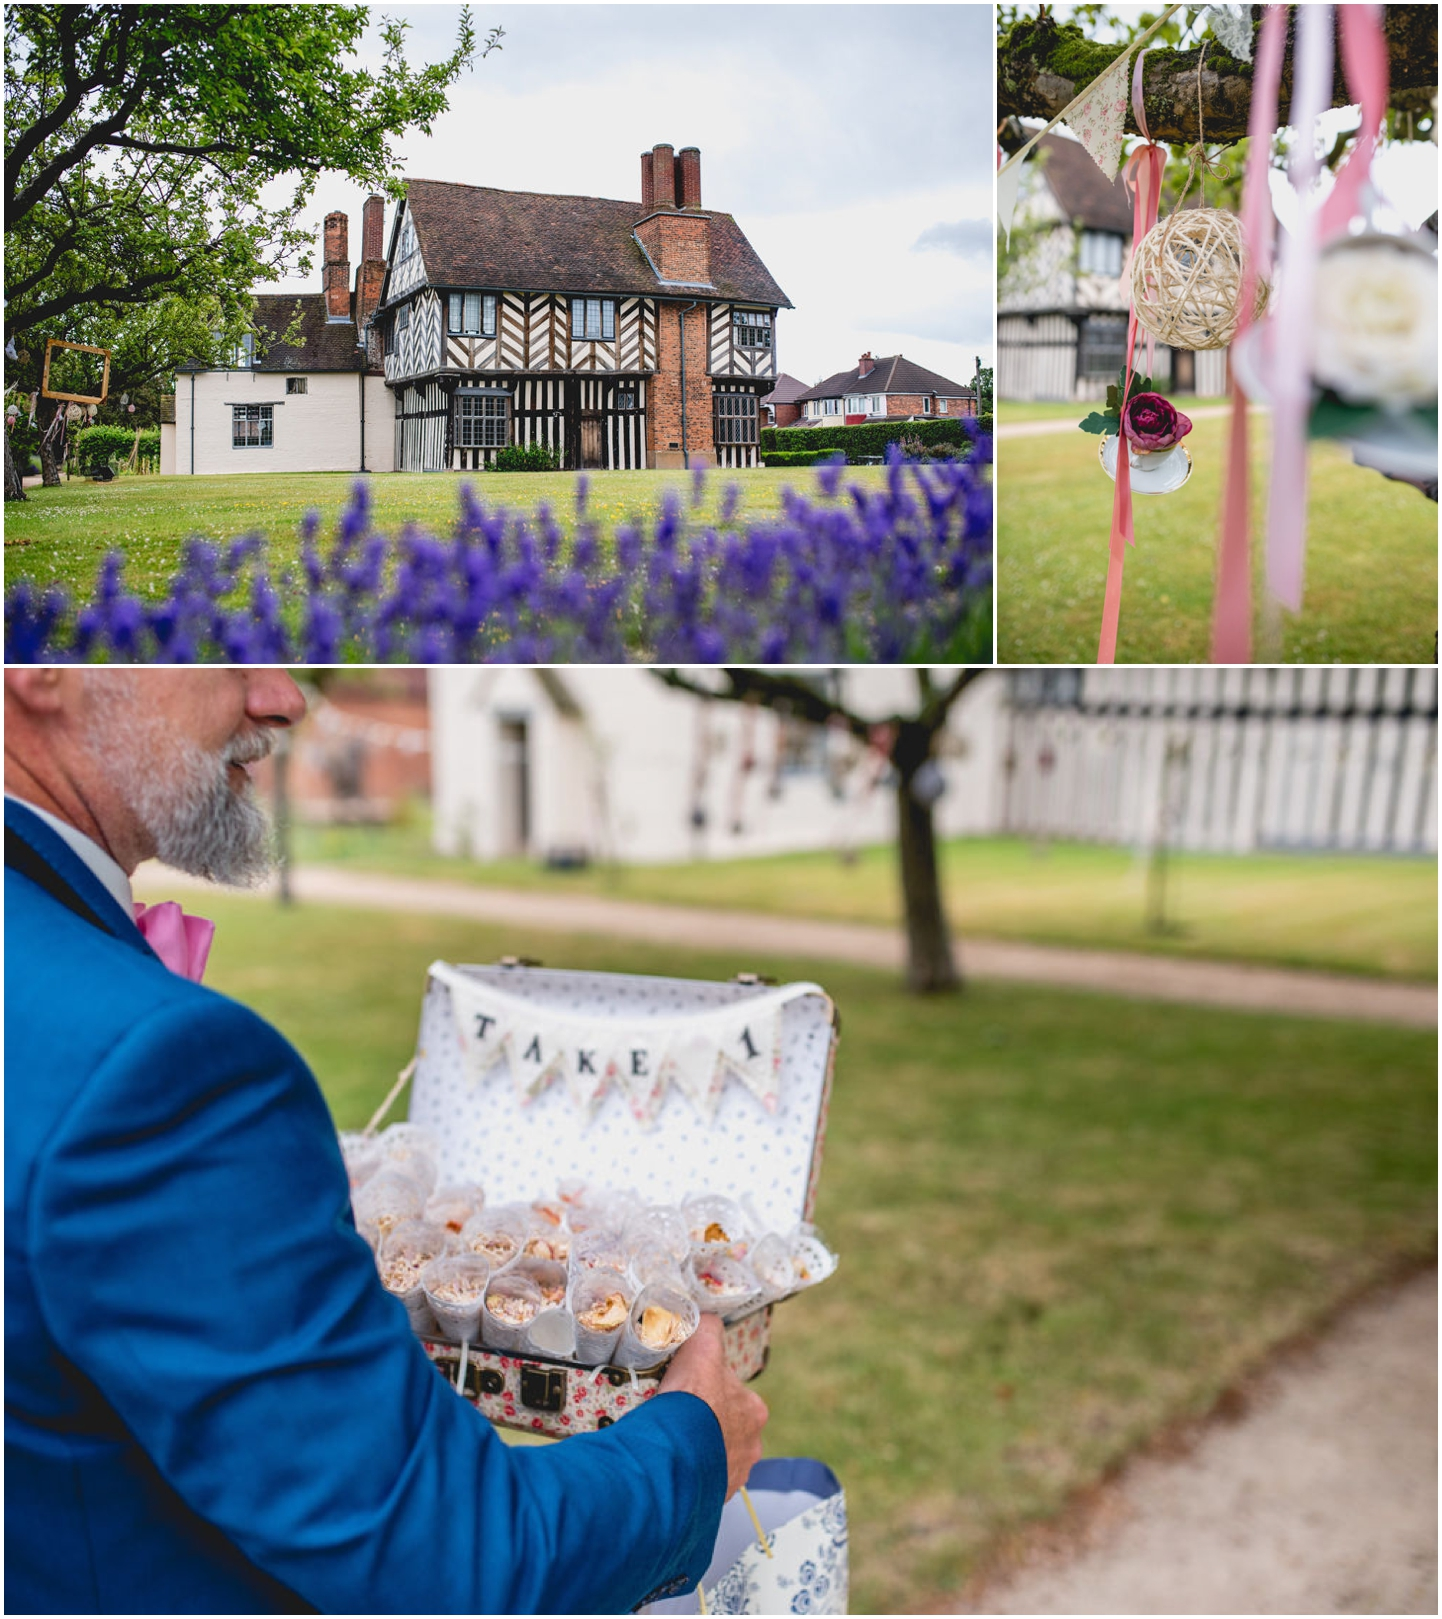 Daniella and Mark Wedding at Blakesley Hall in Birmingham, West Midlands, with beautiful photography by Lisa Carpenter Photography, Sutton Coldfield based wedding photographer